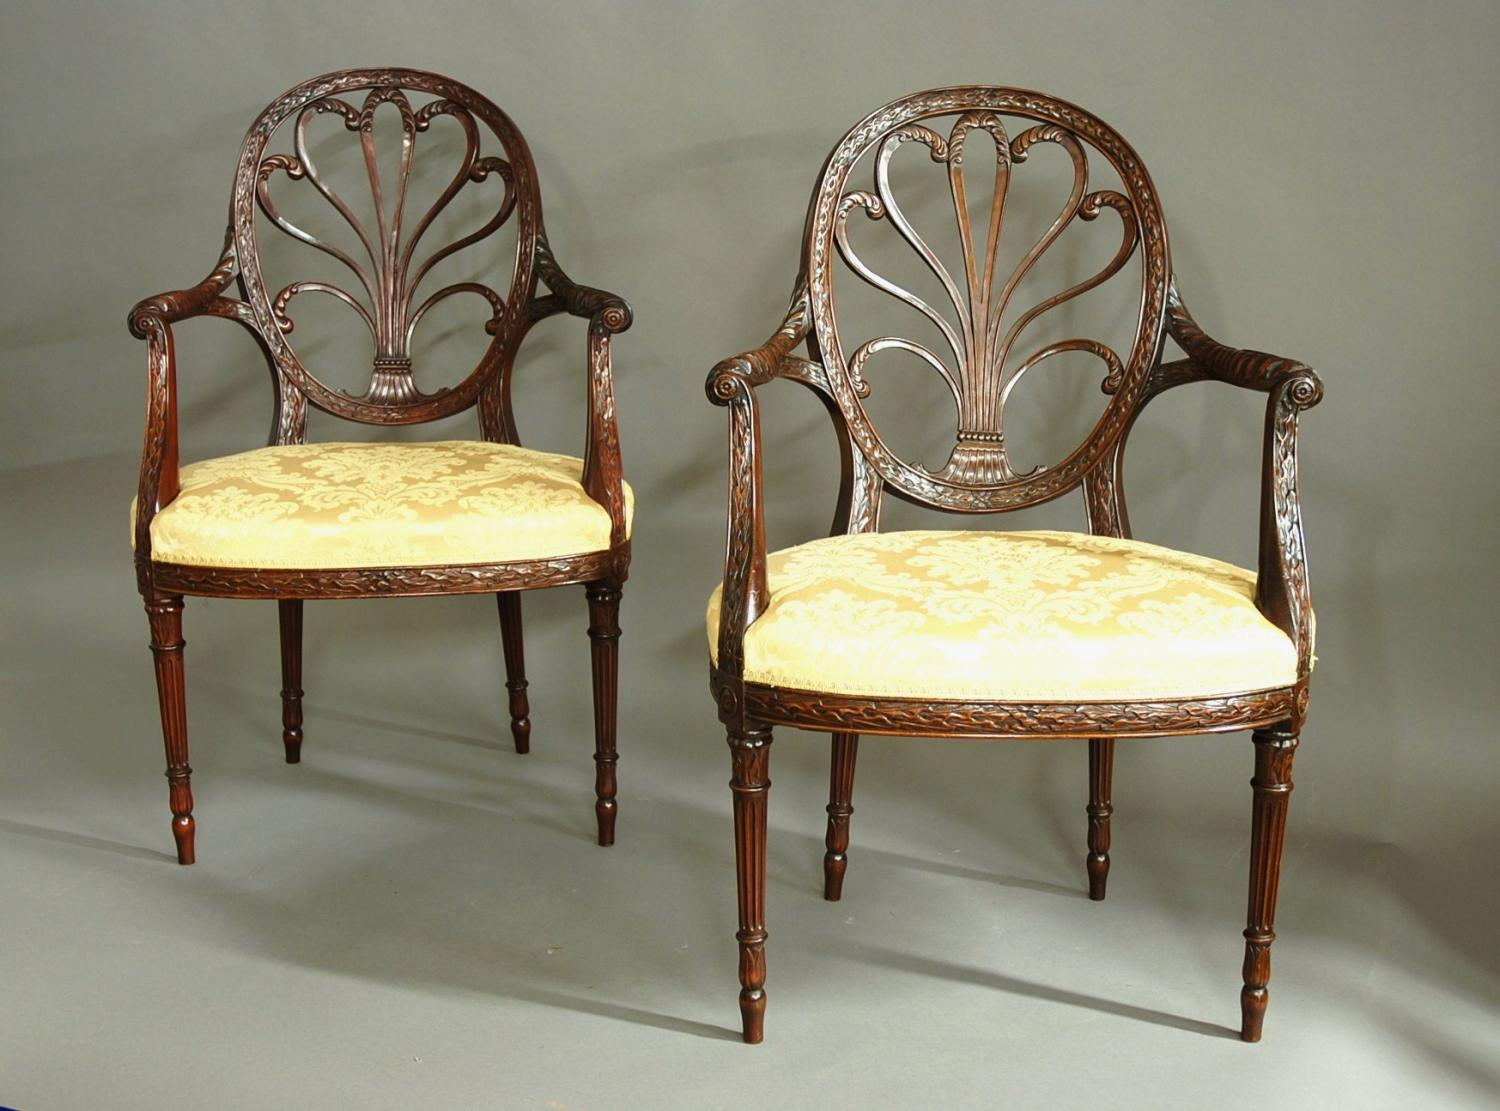 Superb pair of Adam style open armchairs